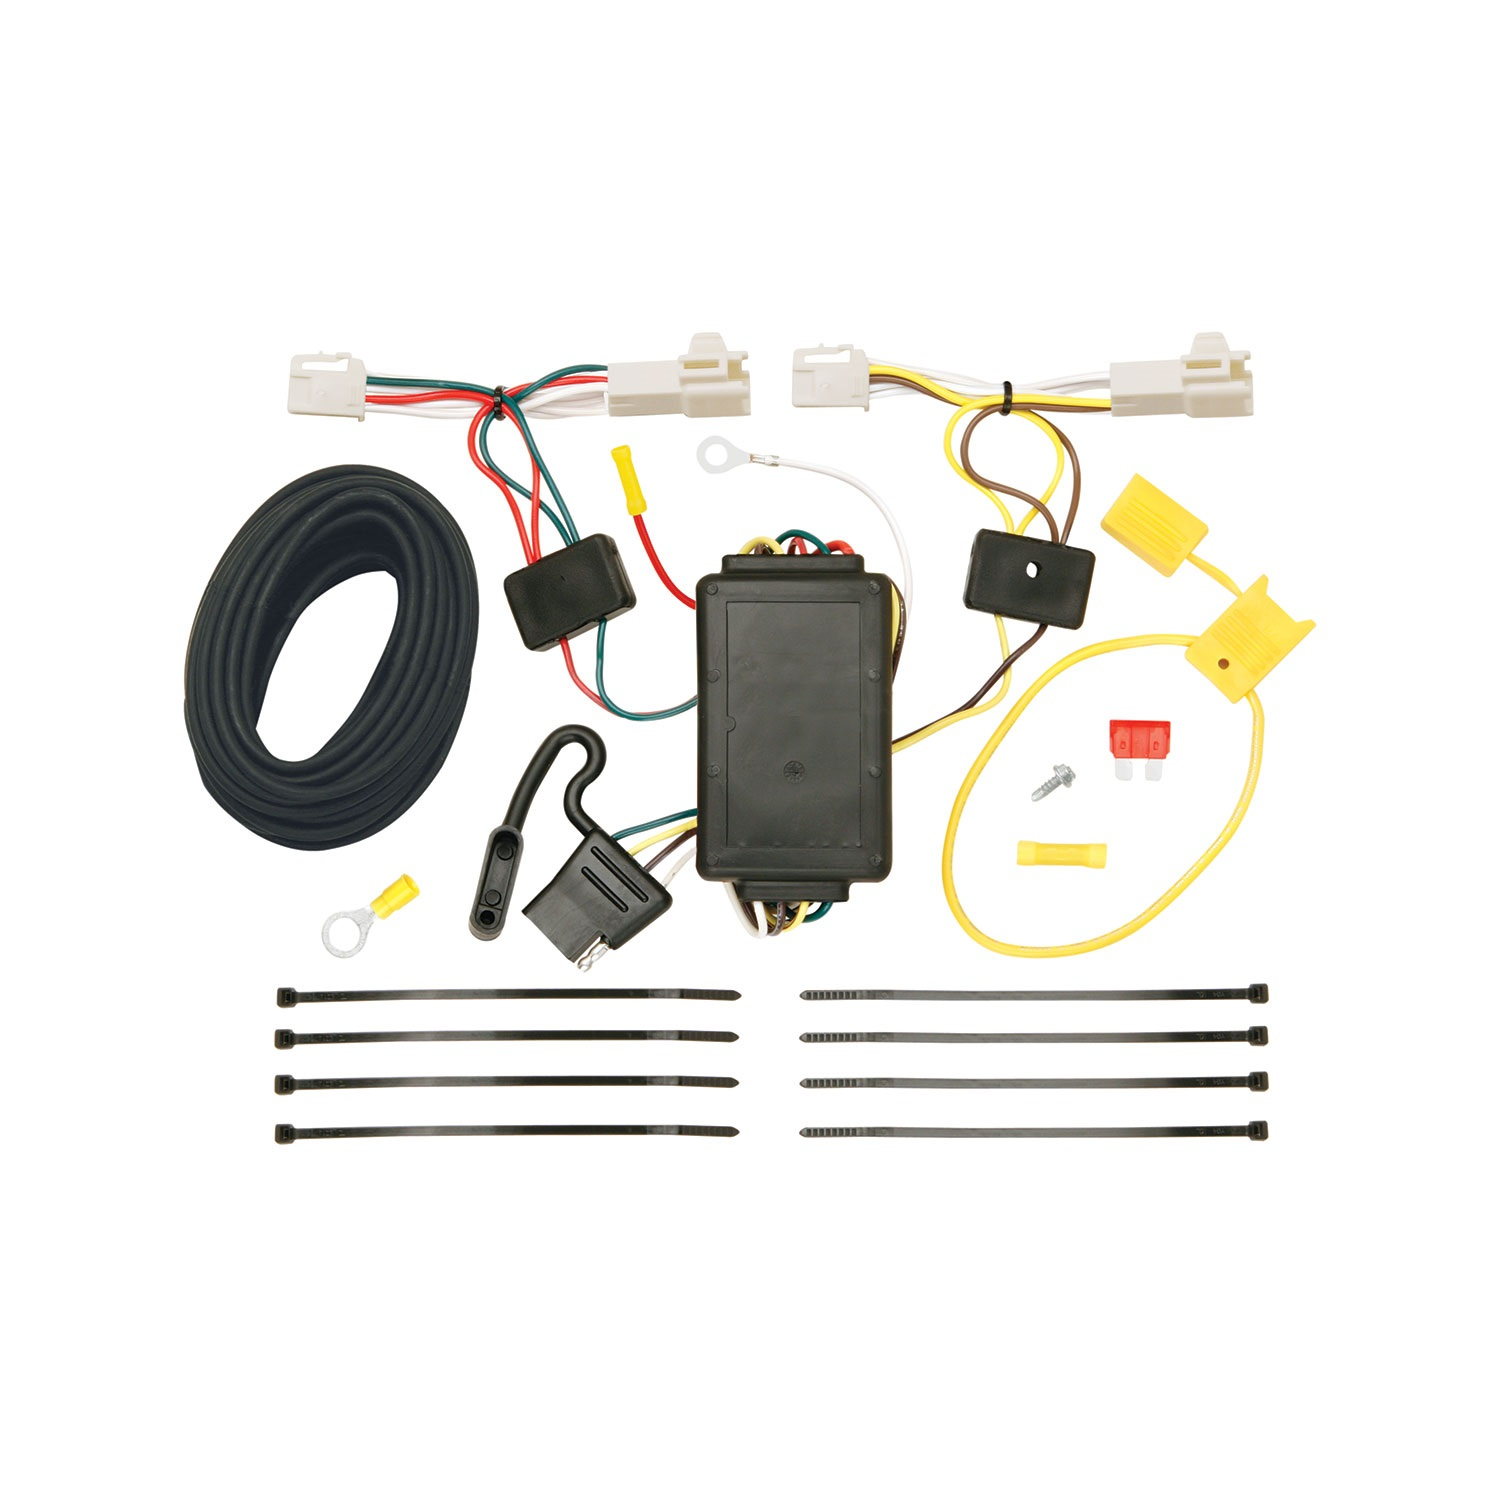 Tow Ready 118459 Wiring T-One Connector; Circuit Protected ModuLite Module; 3 Wire System; Amp Rating 2.1; 4.2;